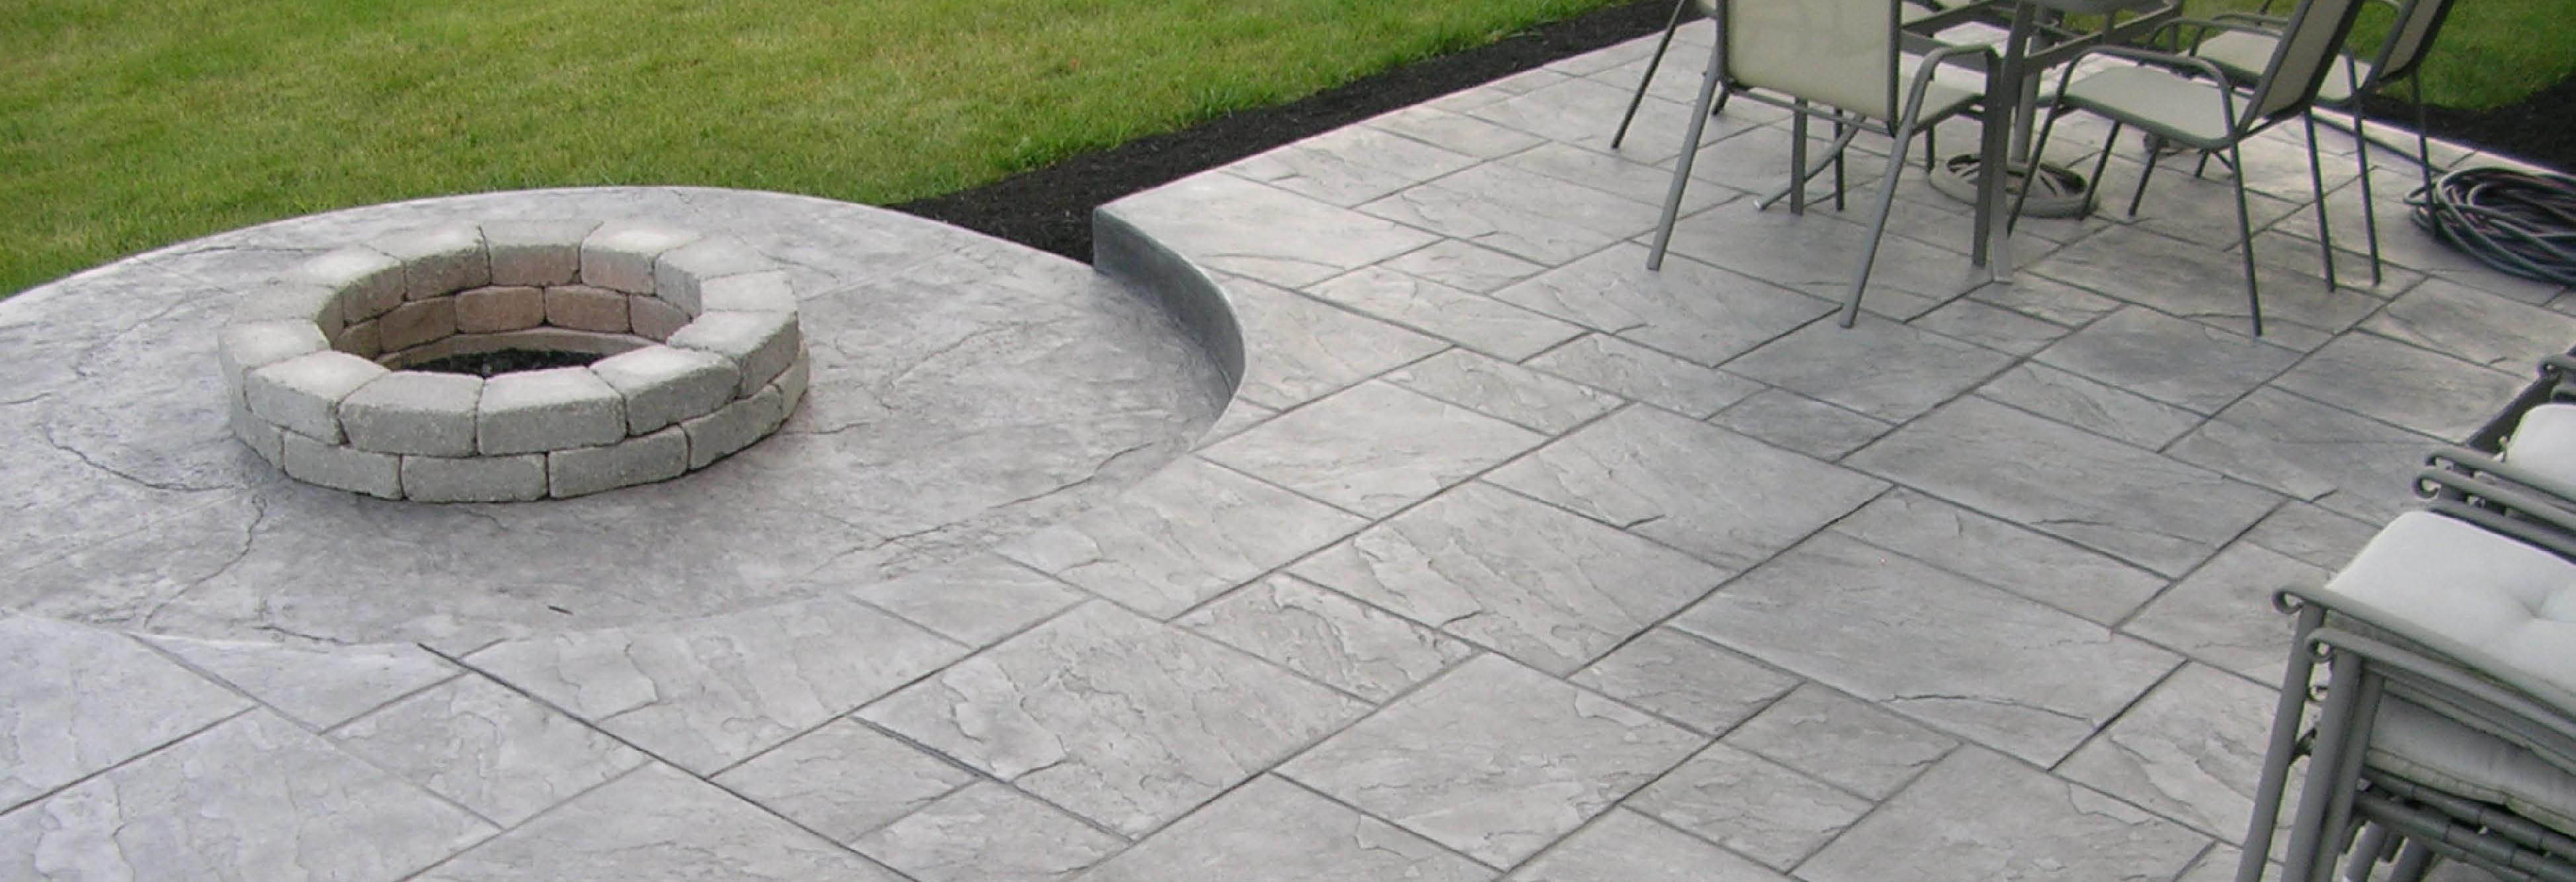 Concrete Garage Slabs, Driveways, Patios, Brick Borders banner